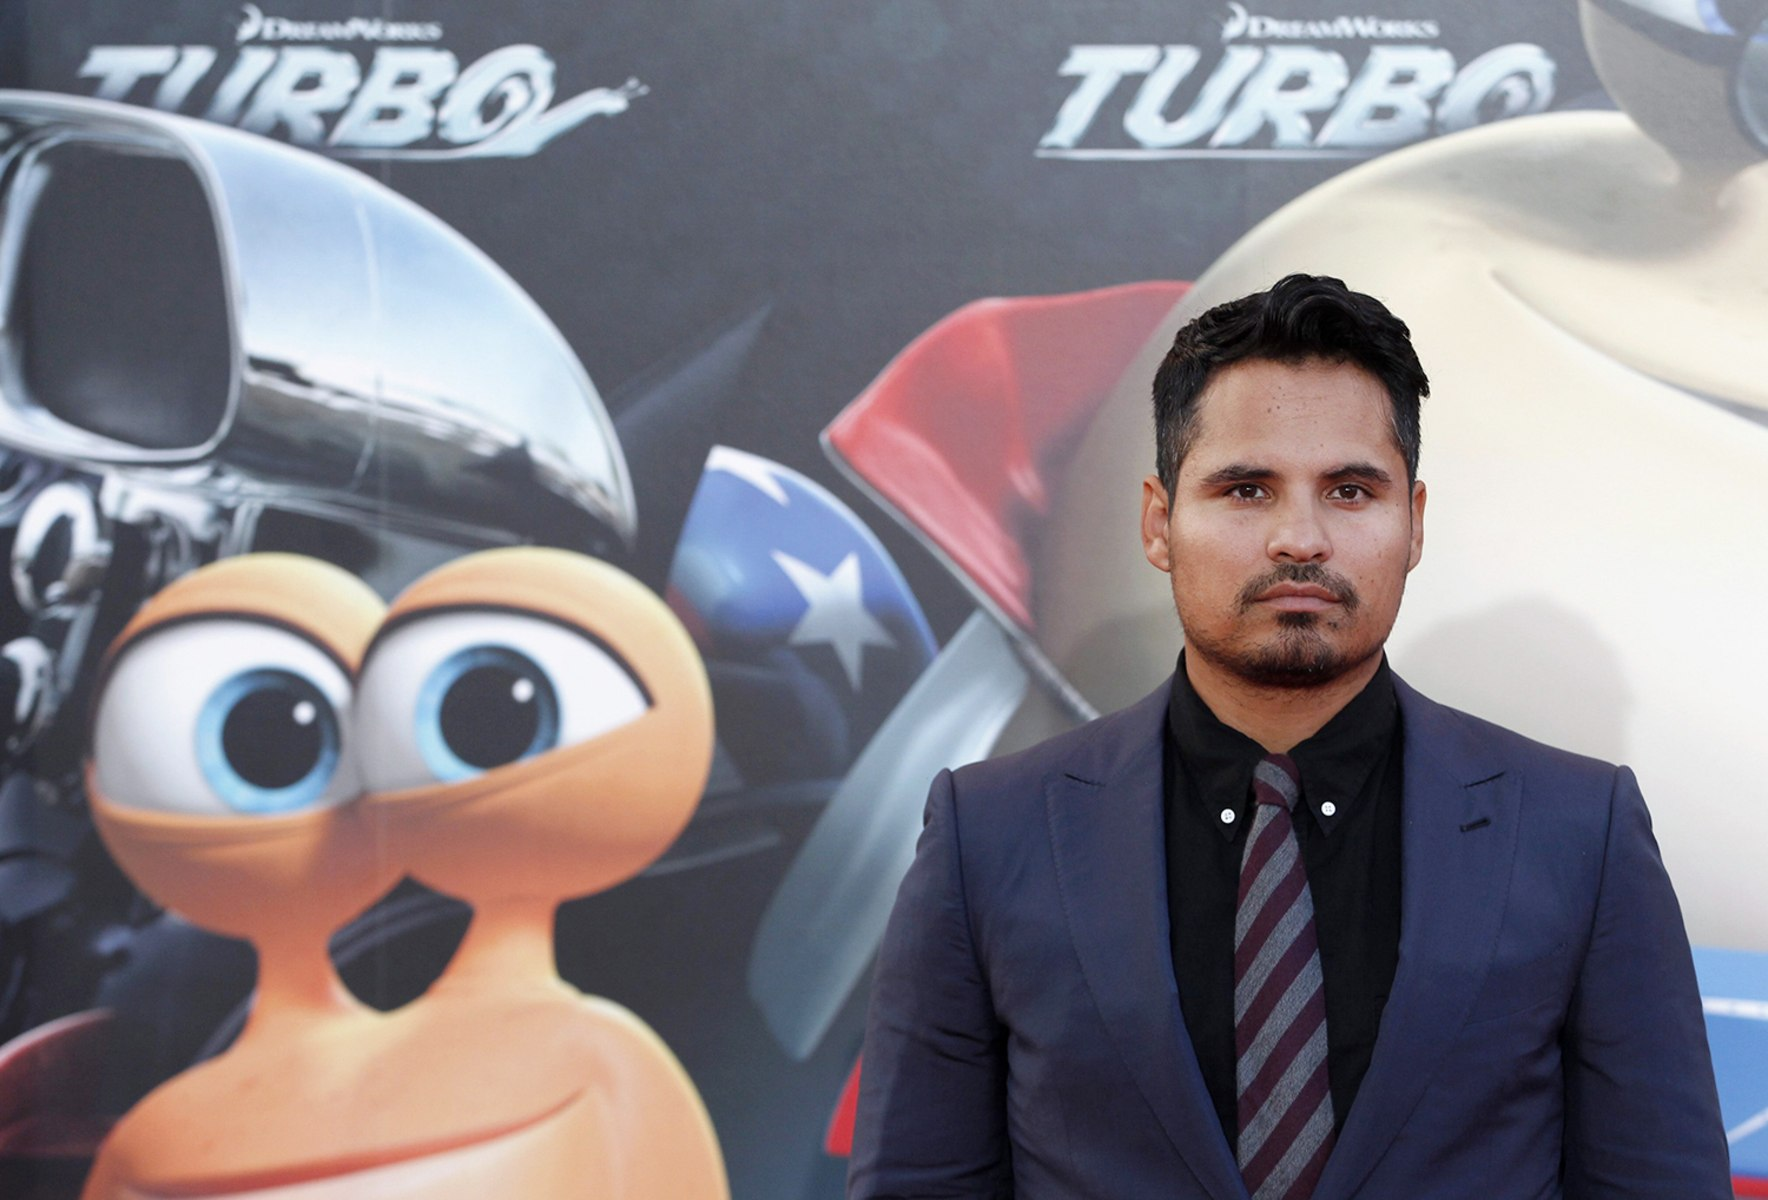 Image: Turbo voice cast actor Michael Pena at world premiere in Barcelona